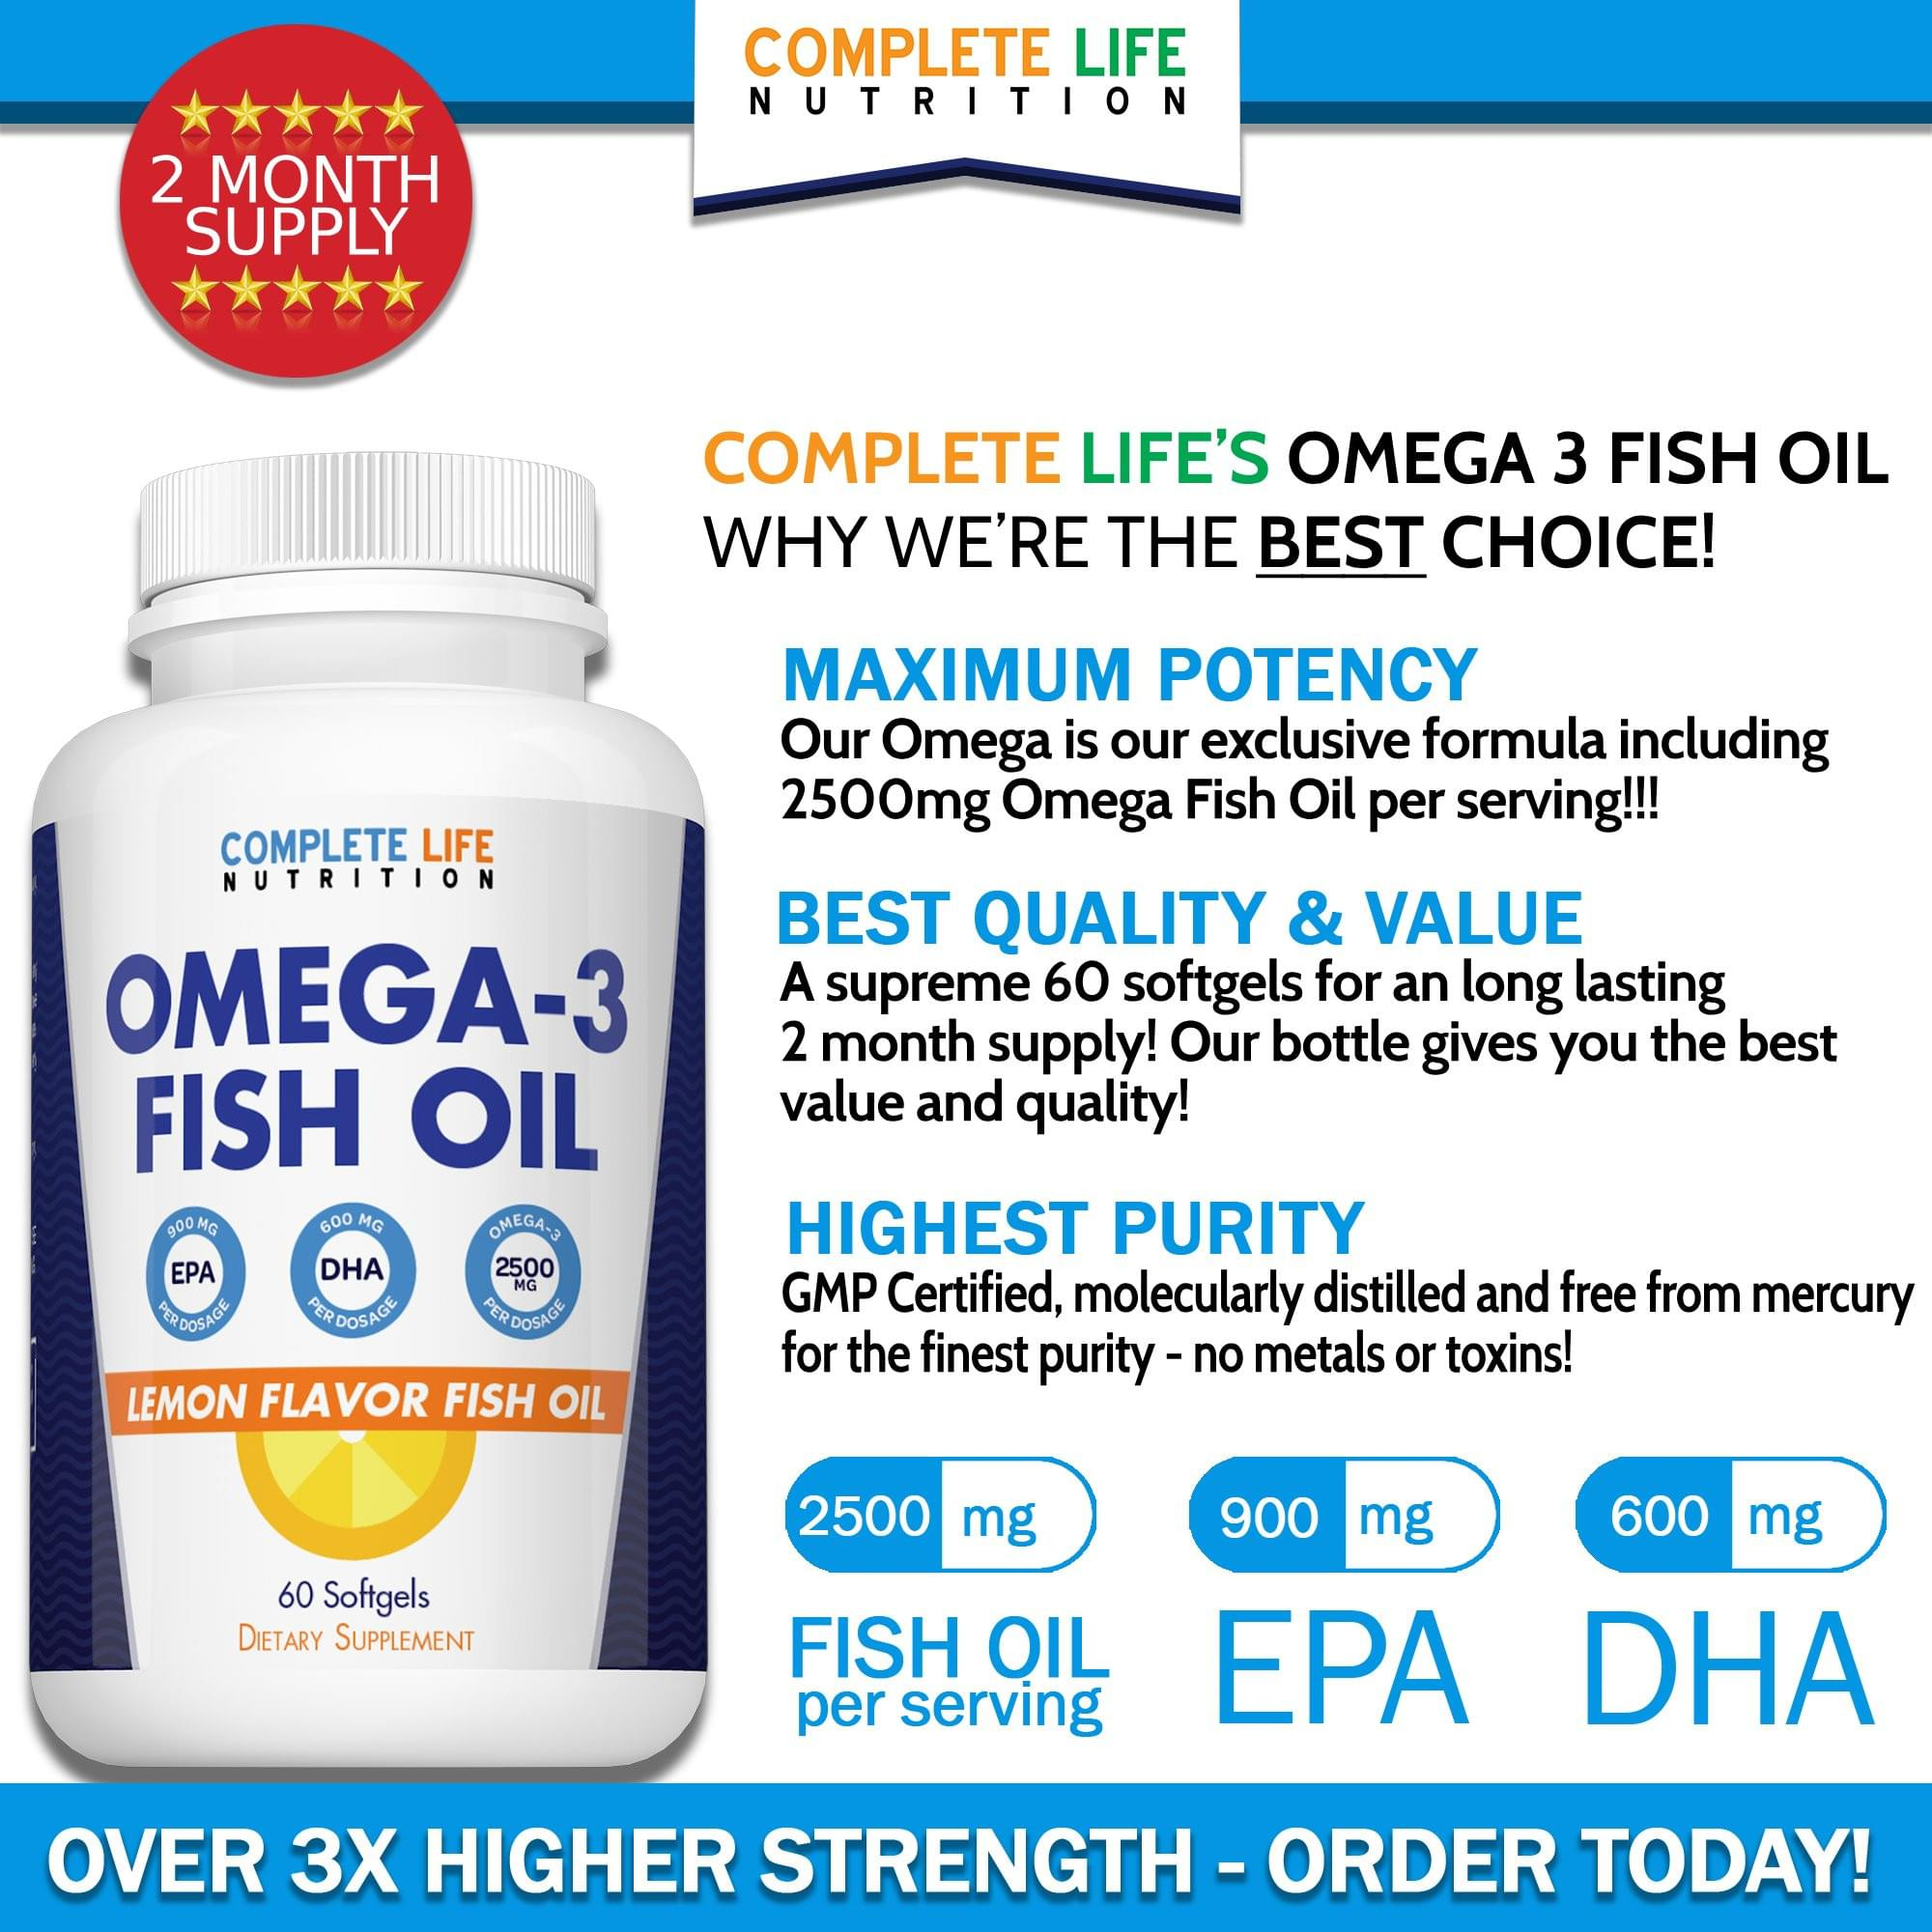 Omega 3 Fish Oil - Top Rated Fish Oil - Complete Life Nutrition - High Quality Doctor Formulated Vitamins and Supplements